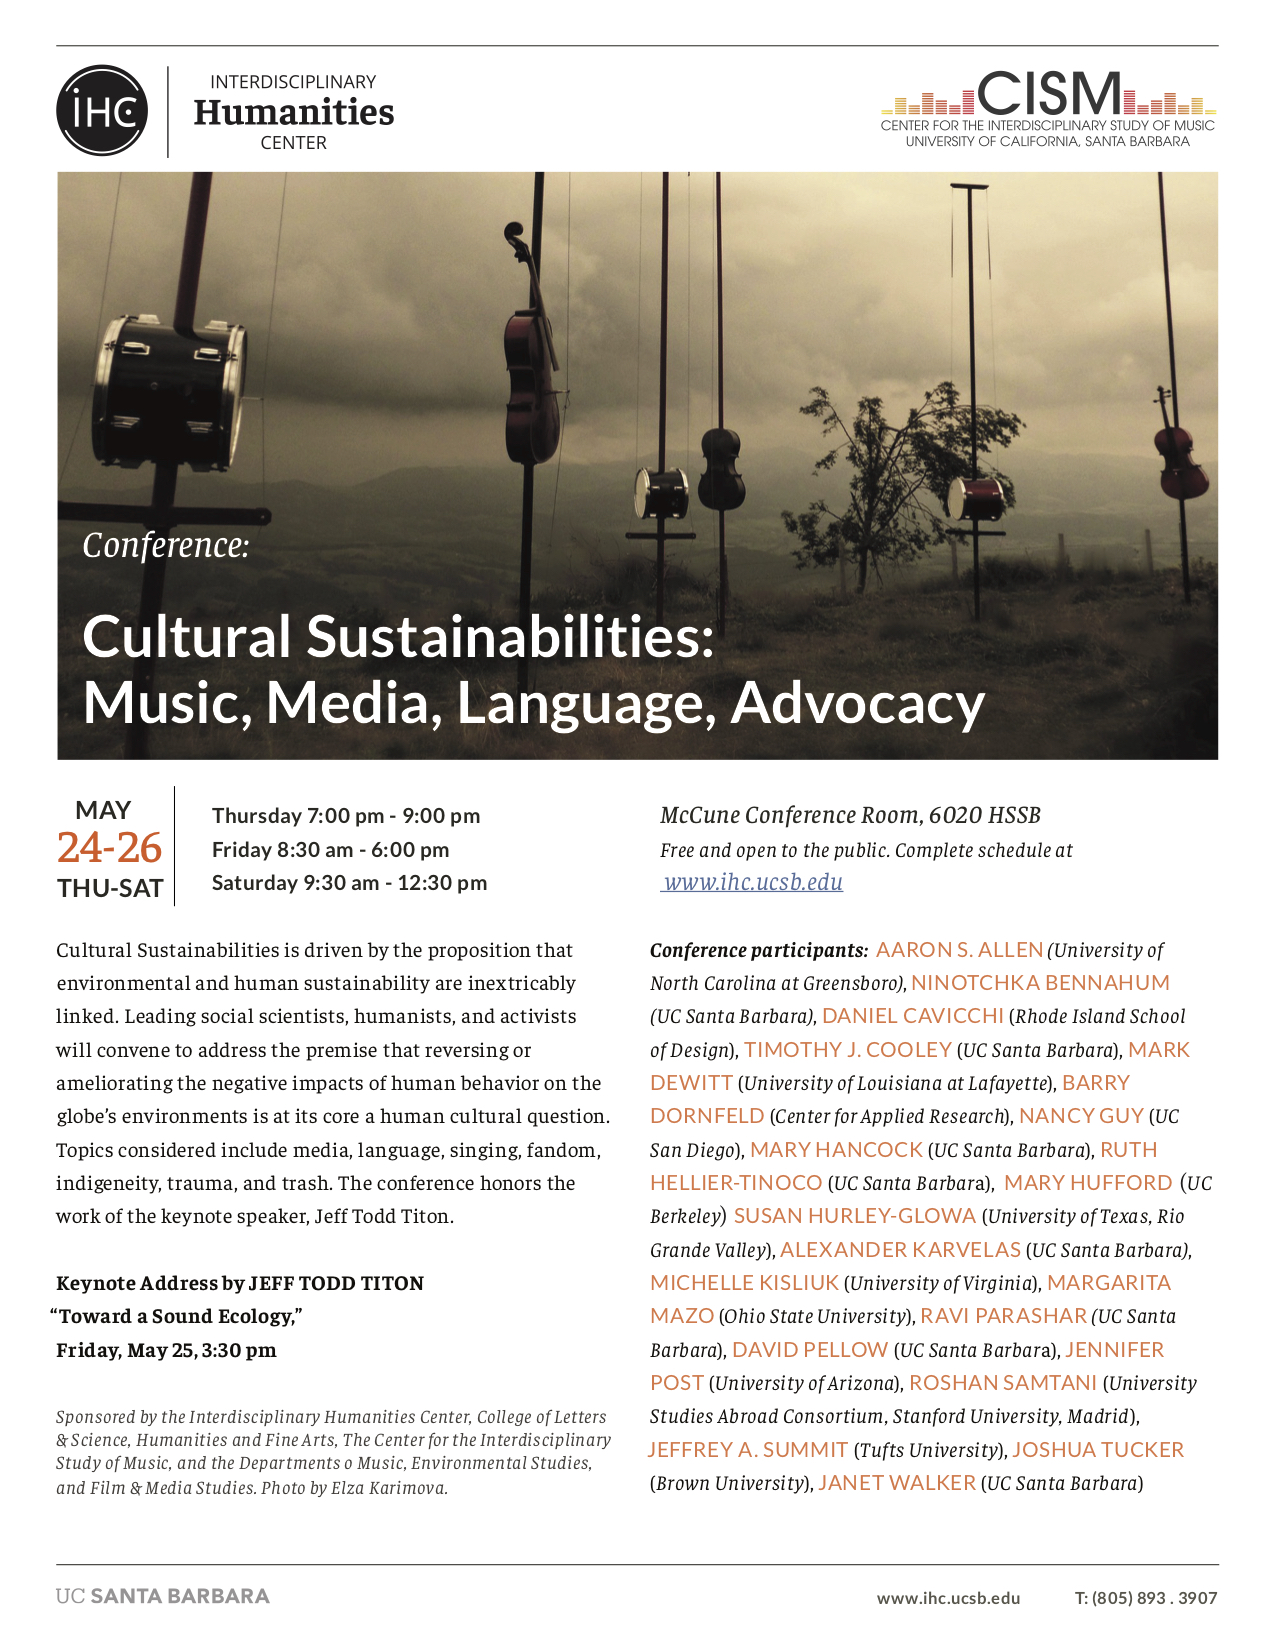 poster of cultural sustainabilities conference